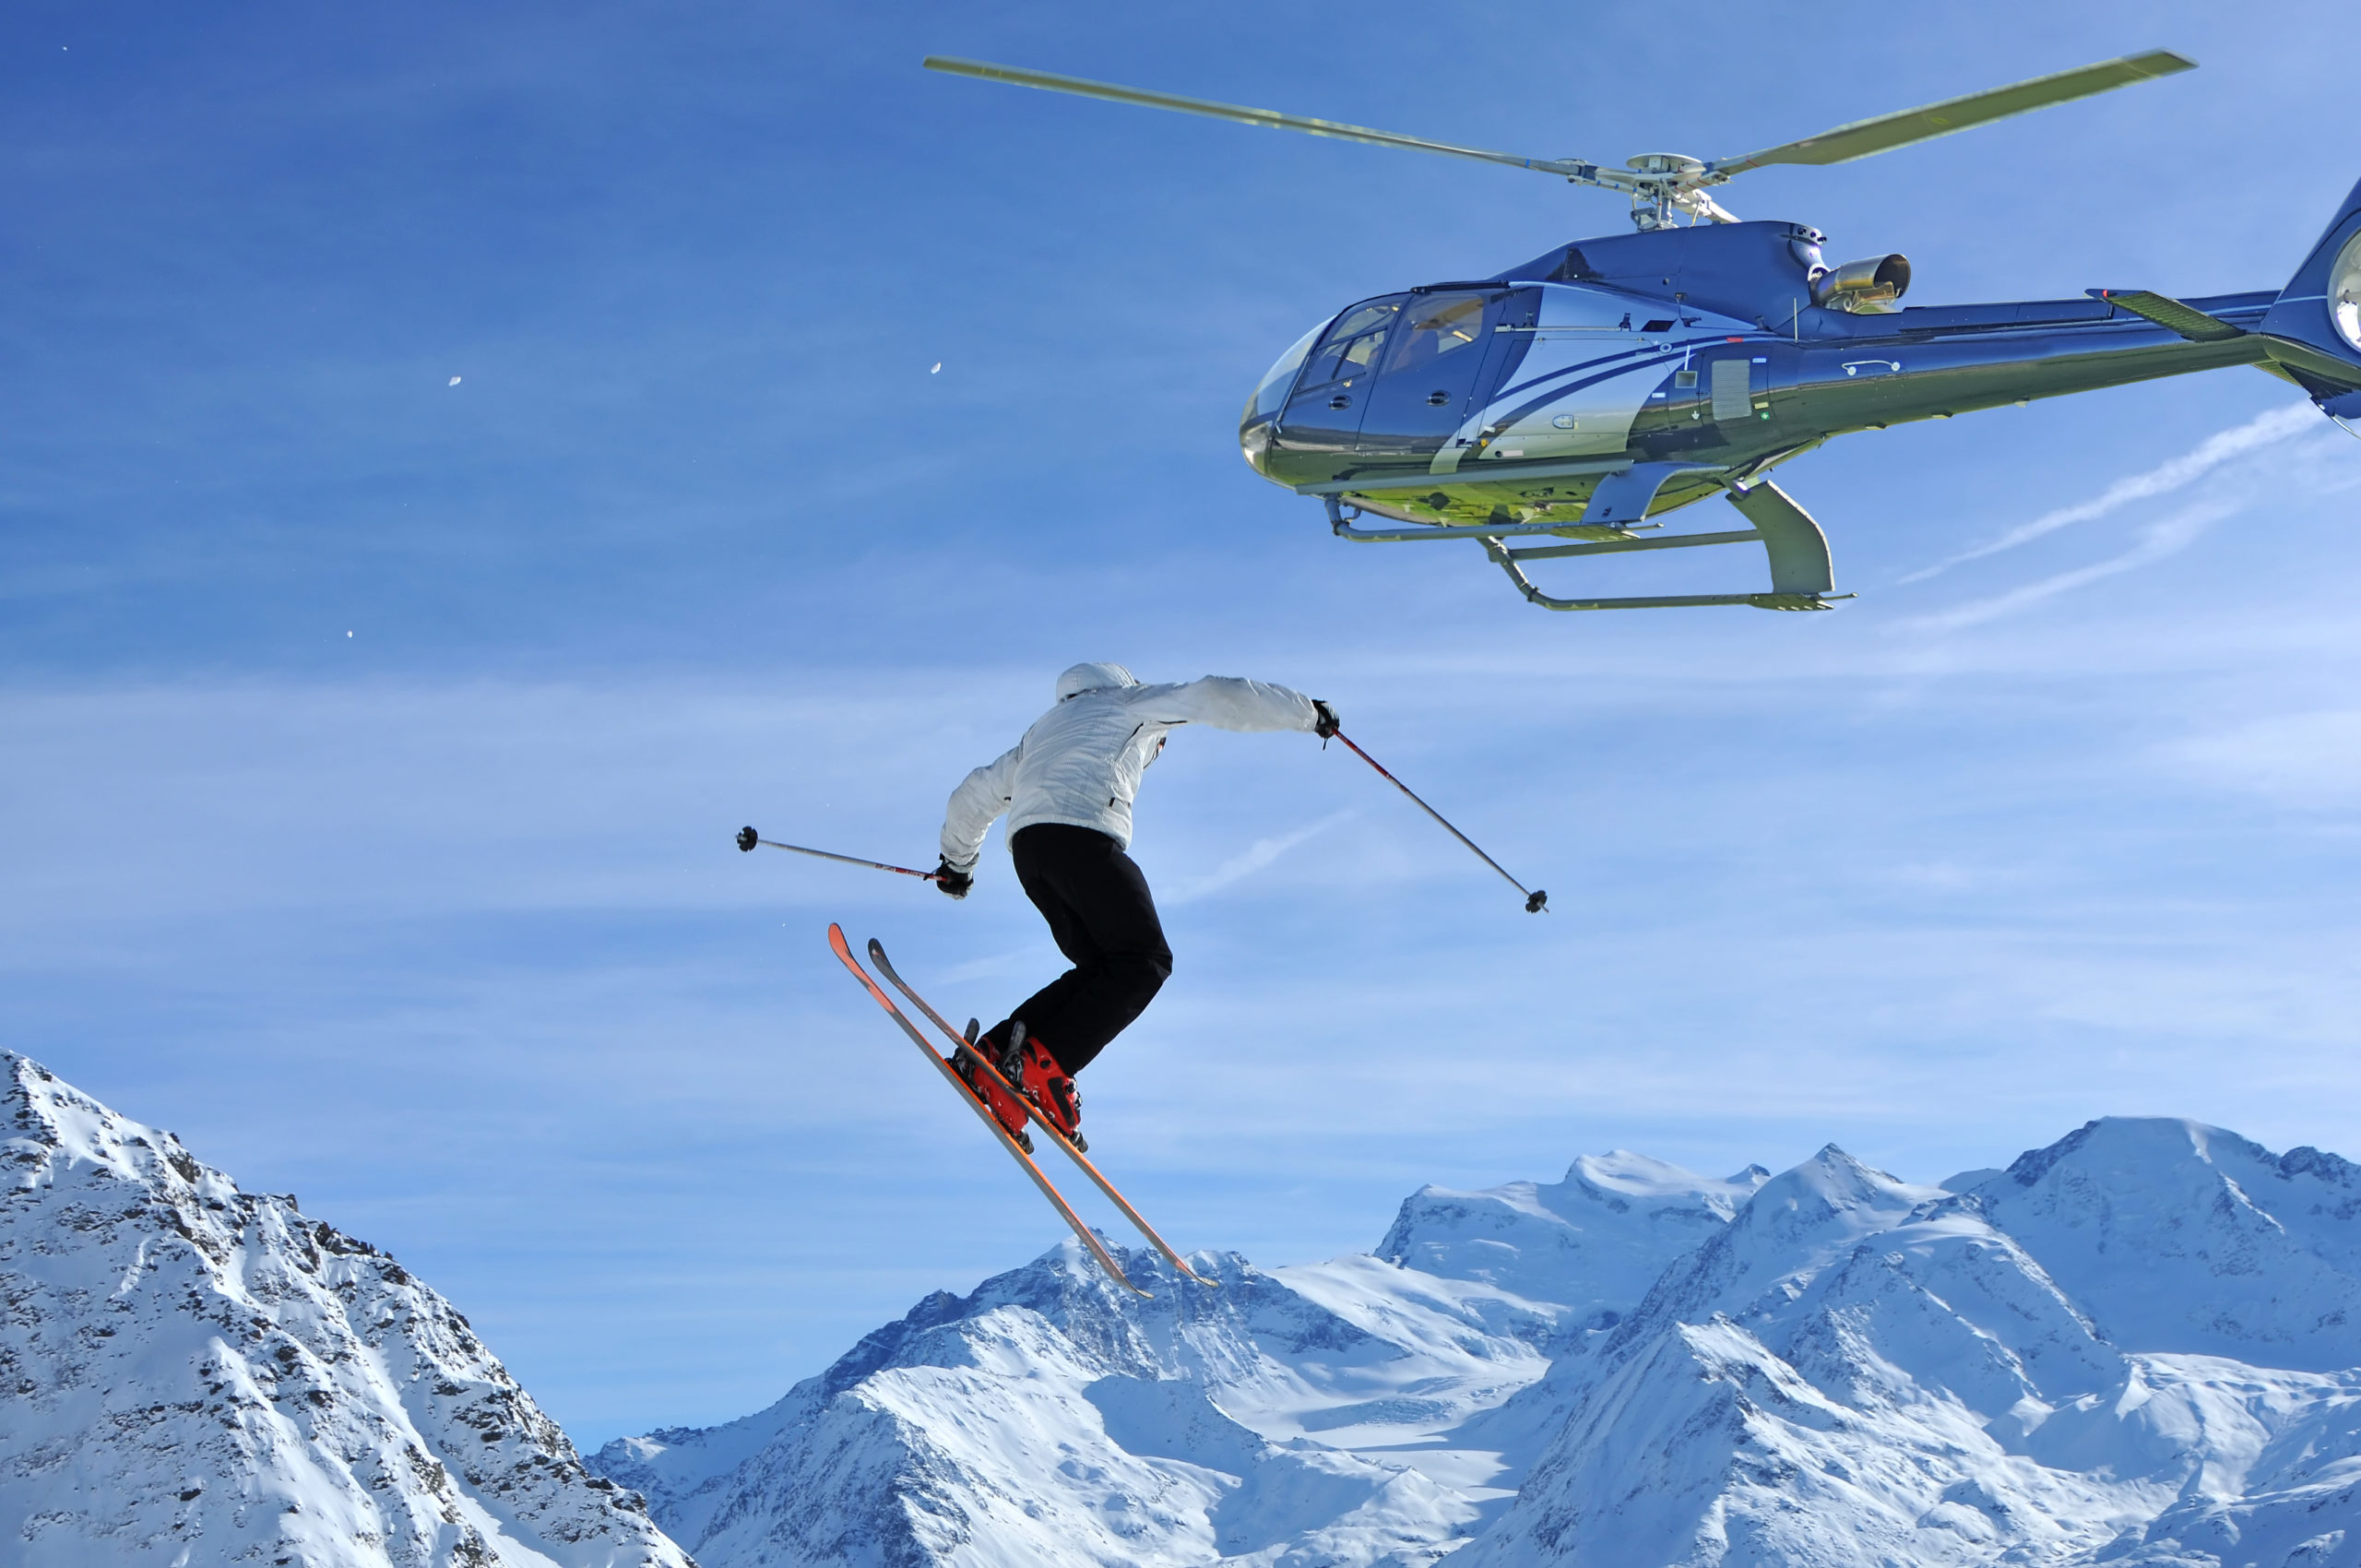 Plan an Epic Heli Ski Adventure at These Top Destinations